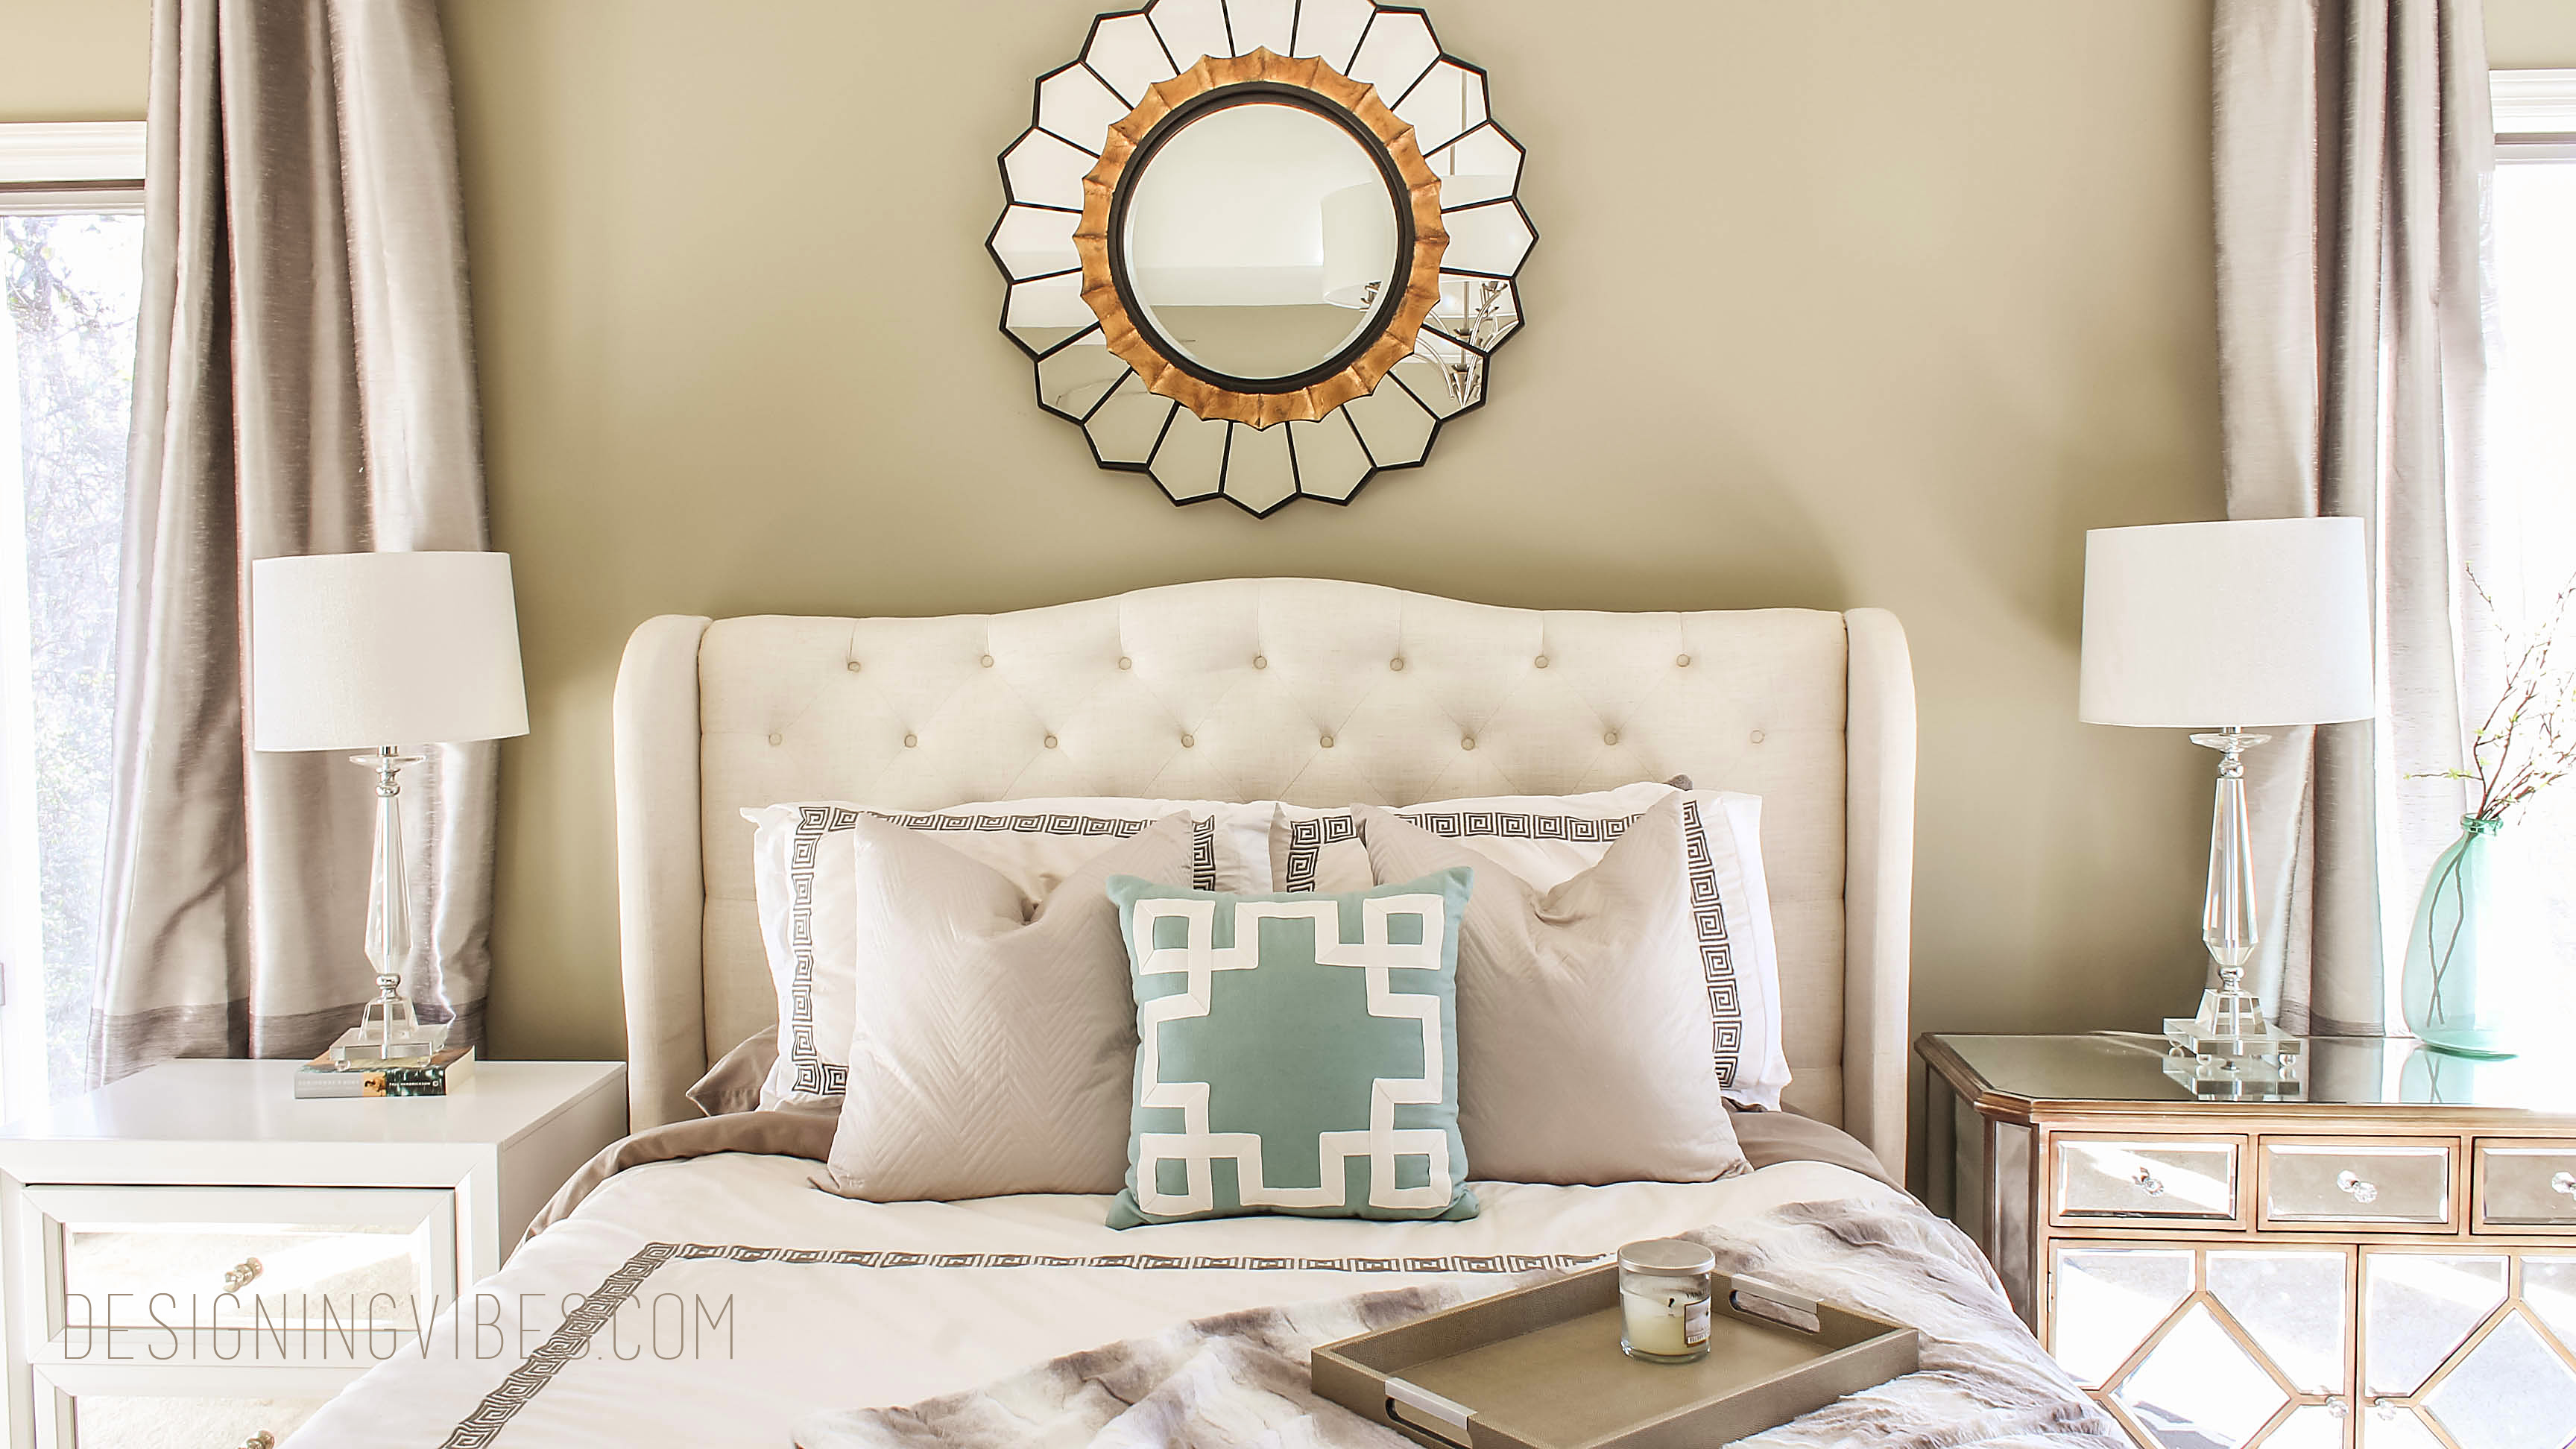 Designing Romantic Vibes in the Bedroom